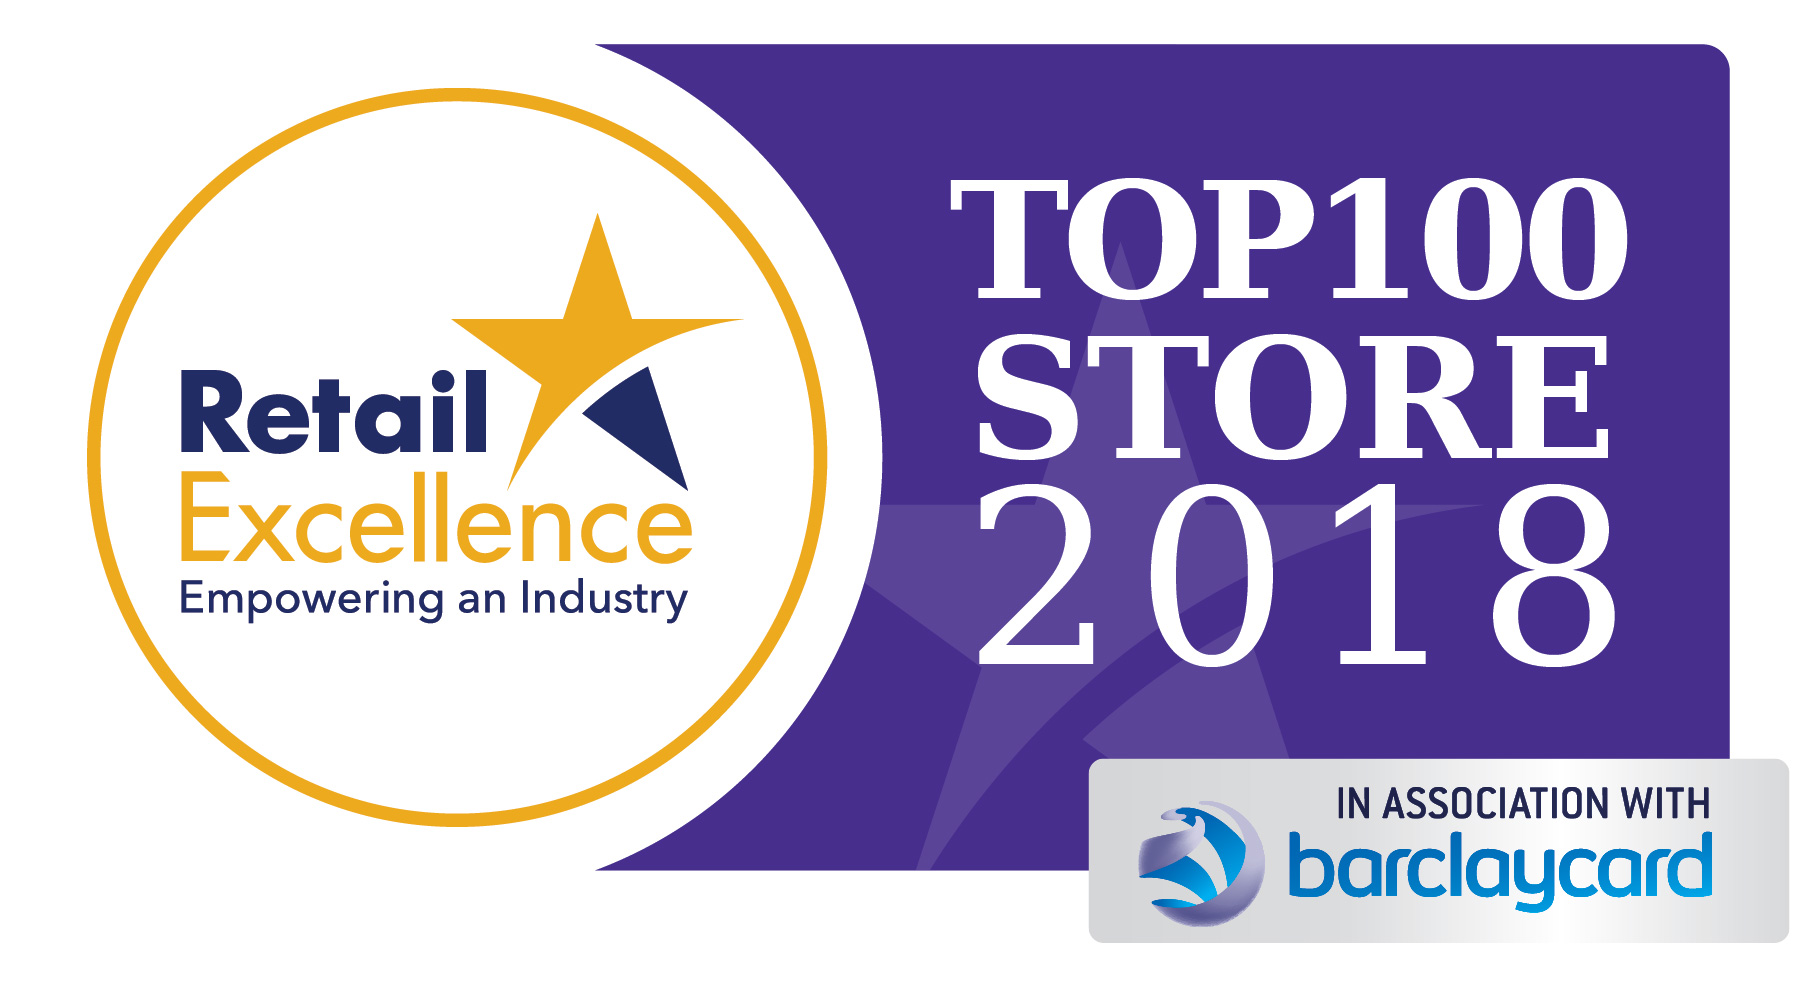 Retail Excellence Top 100 Store